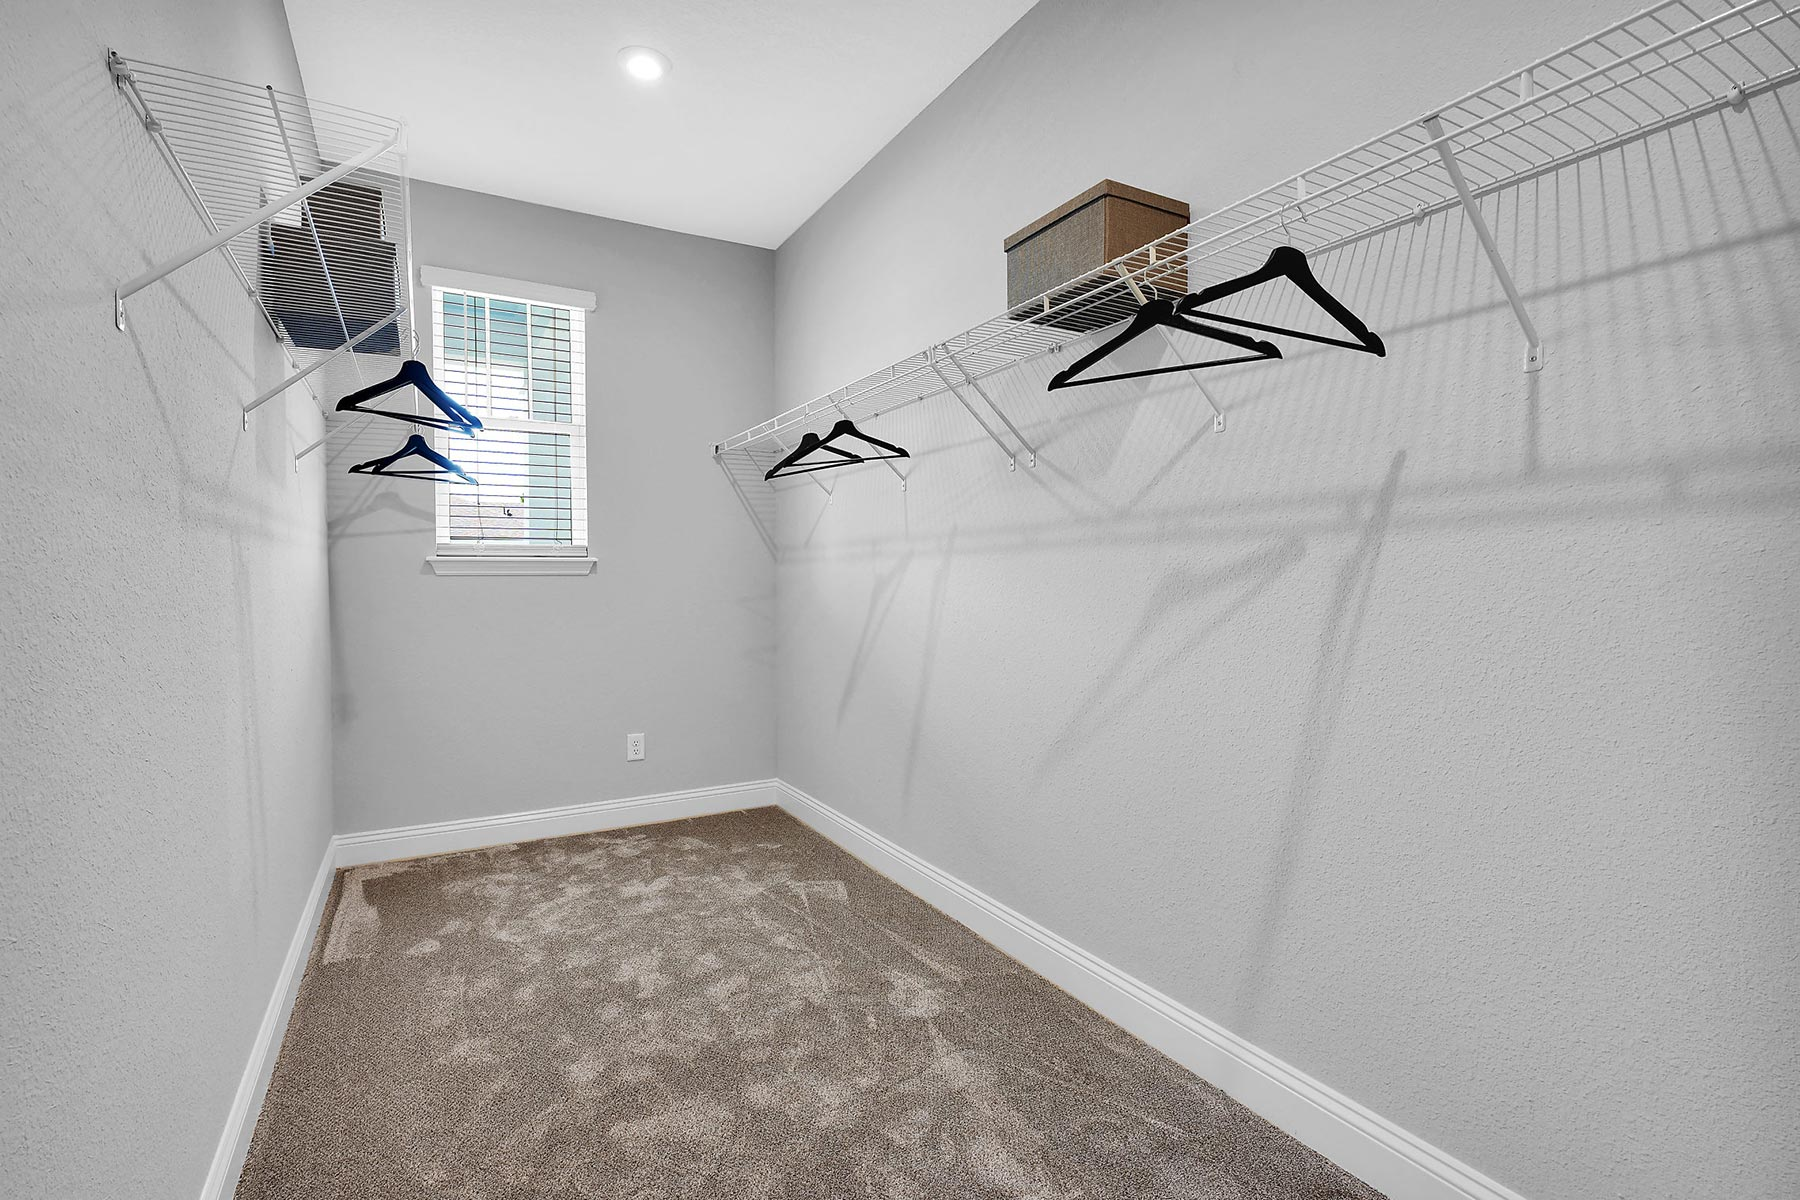 Rialta Plan Closet at Pablo Cove in Jacksonville Florida by Mattamy Homes